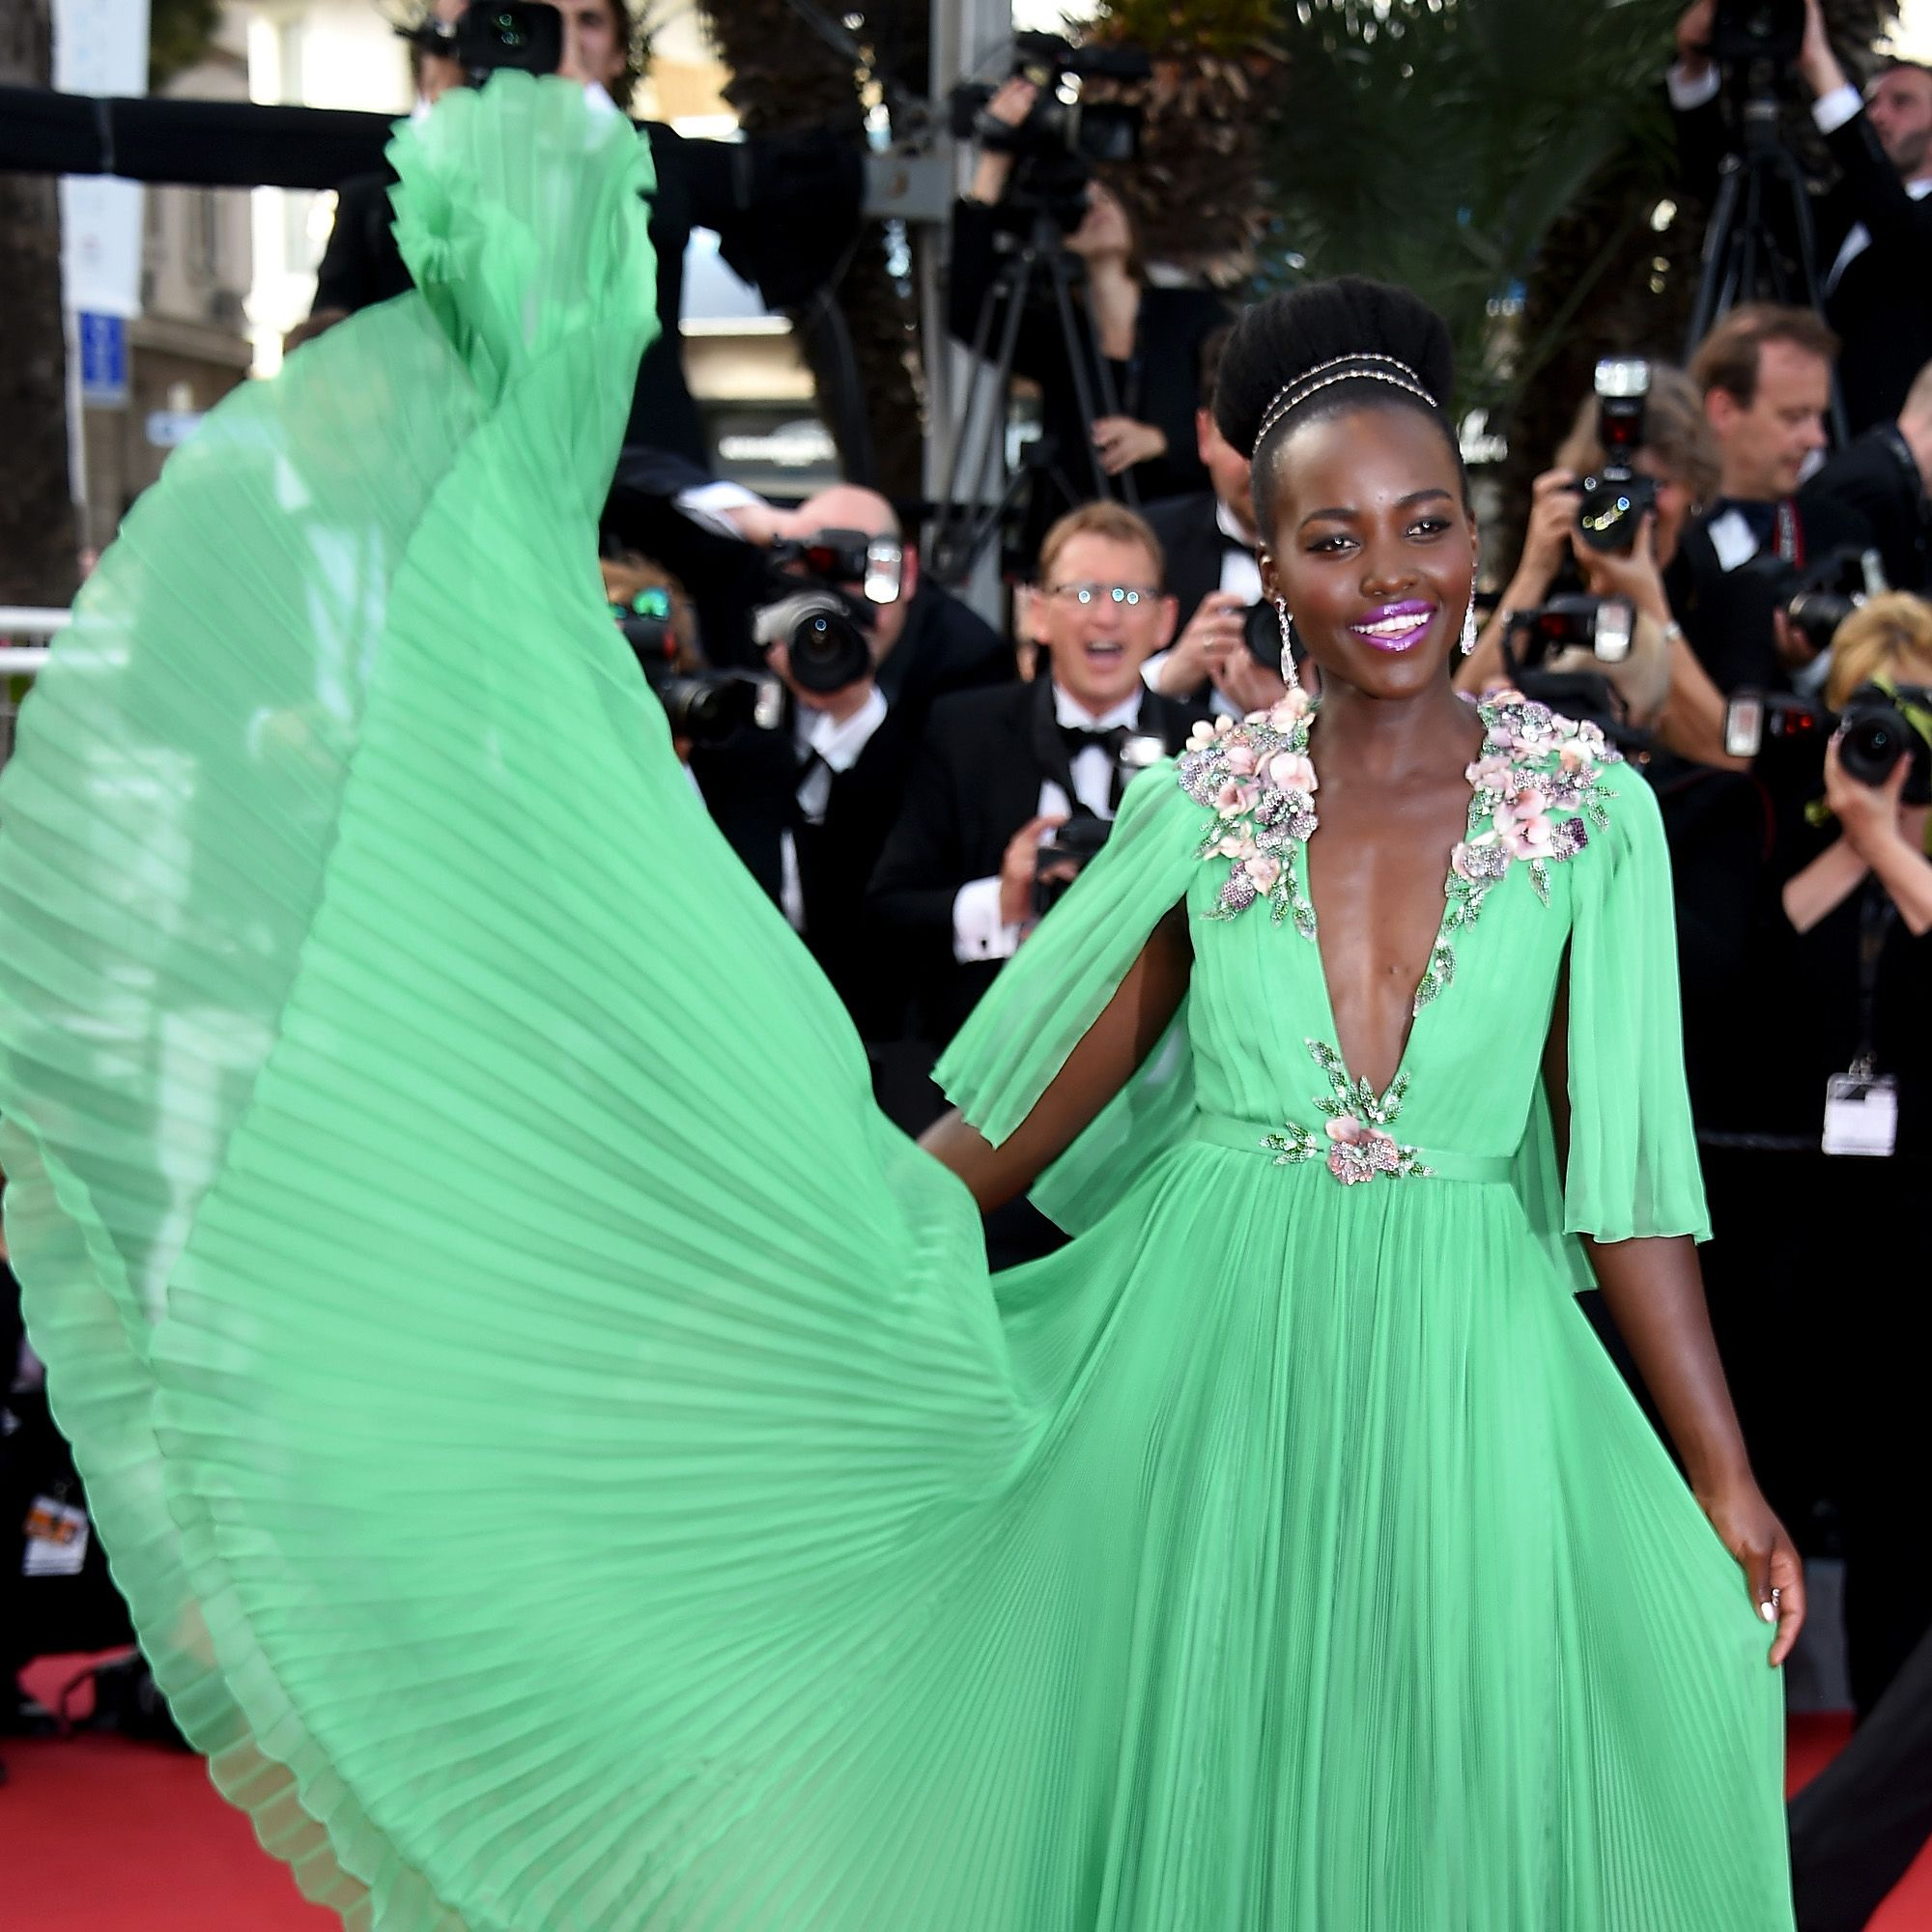 """CANNES, FRANCE - MAY 13:  Actress Lupita Nyong'o attends the opening ceremony and premiere of """"La Tete Haute (""""Standing Tall"""") during the 68th annual Cannes Film Festival on May 13, 2015 in Cannes, France.  (Photo by Venturelli/WireImage)"""